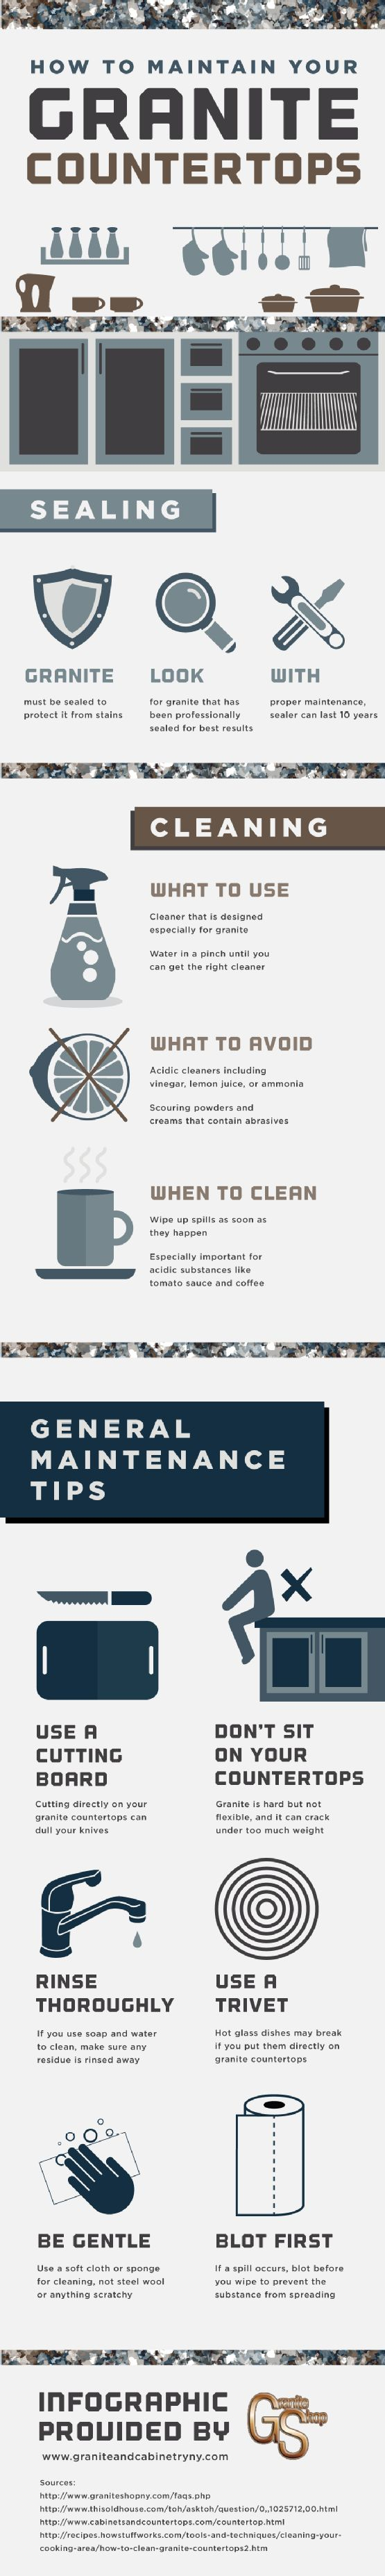 How To Maintain Your Granite Countertops   | #Kitchen #HowTo #infographics repinned by @Piktochart